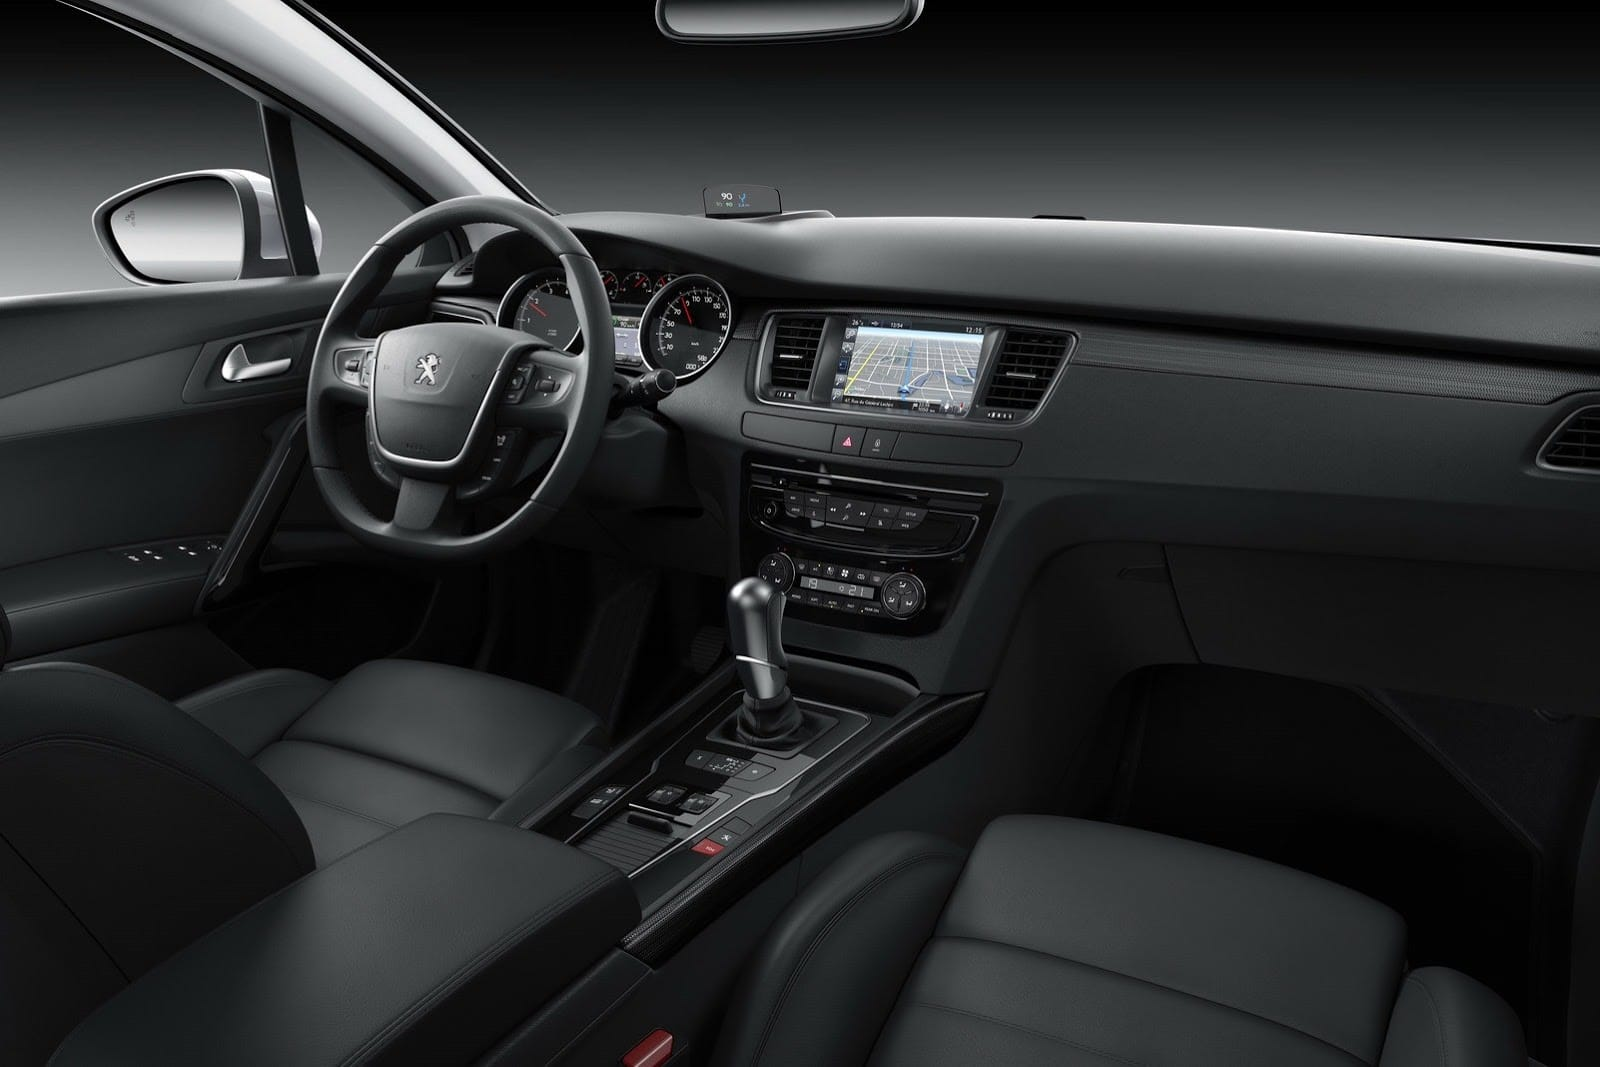 Les photos officielles du restylage de la peugeot 508 2014 for Interieur 508